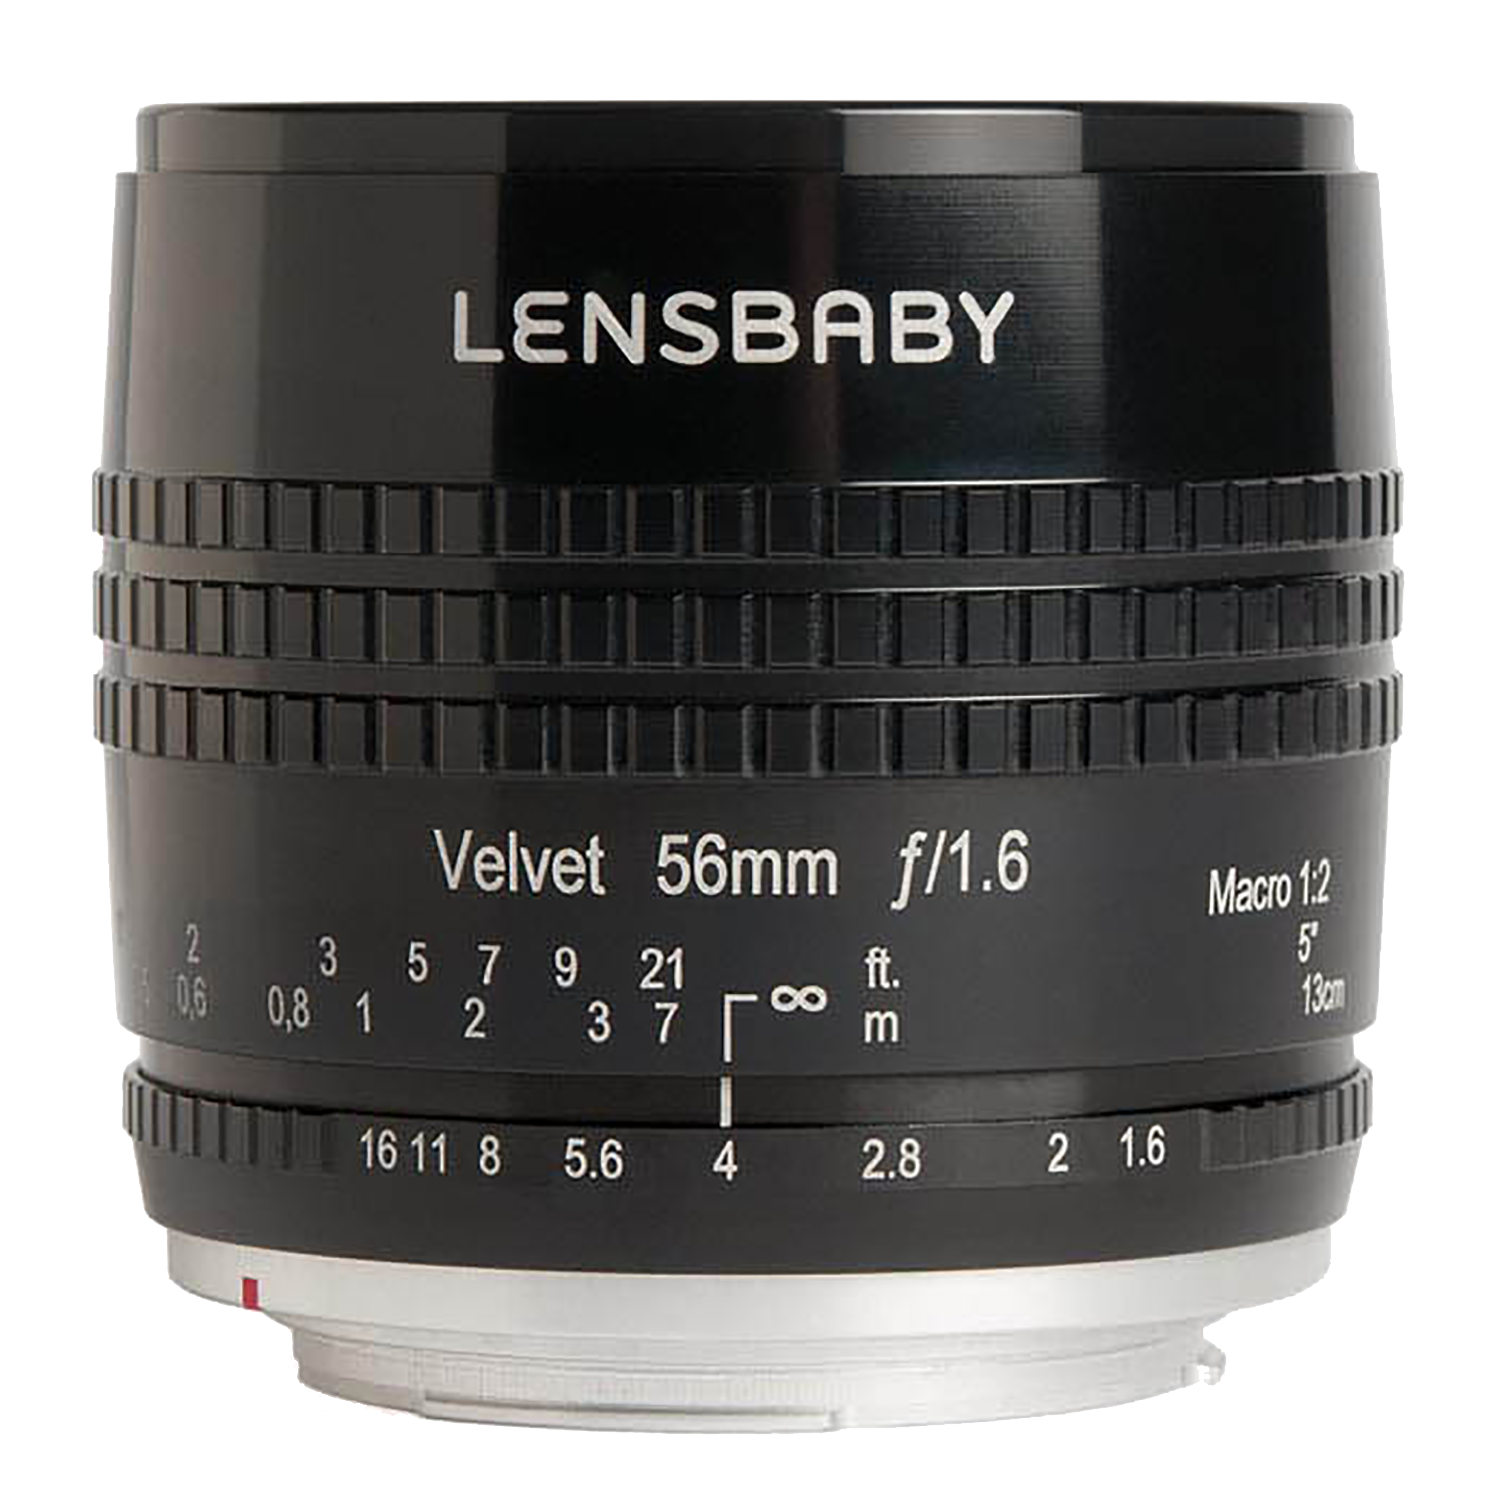 Lensbaby sample images